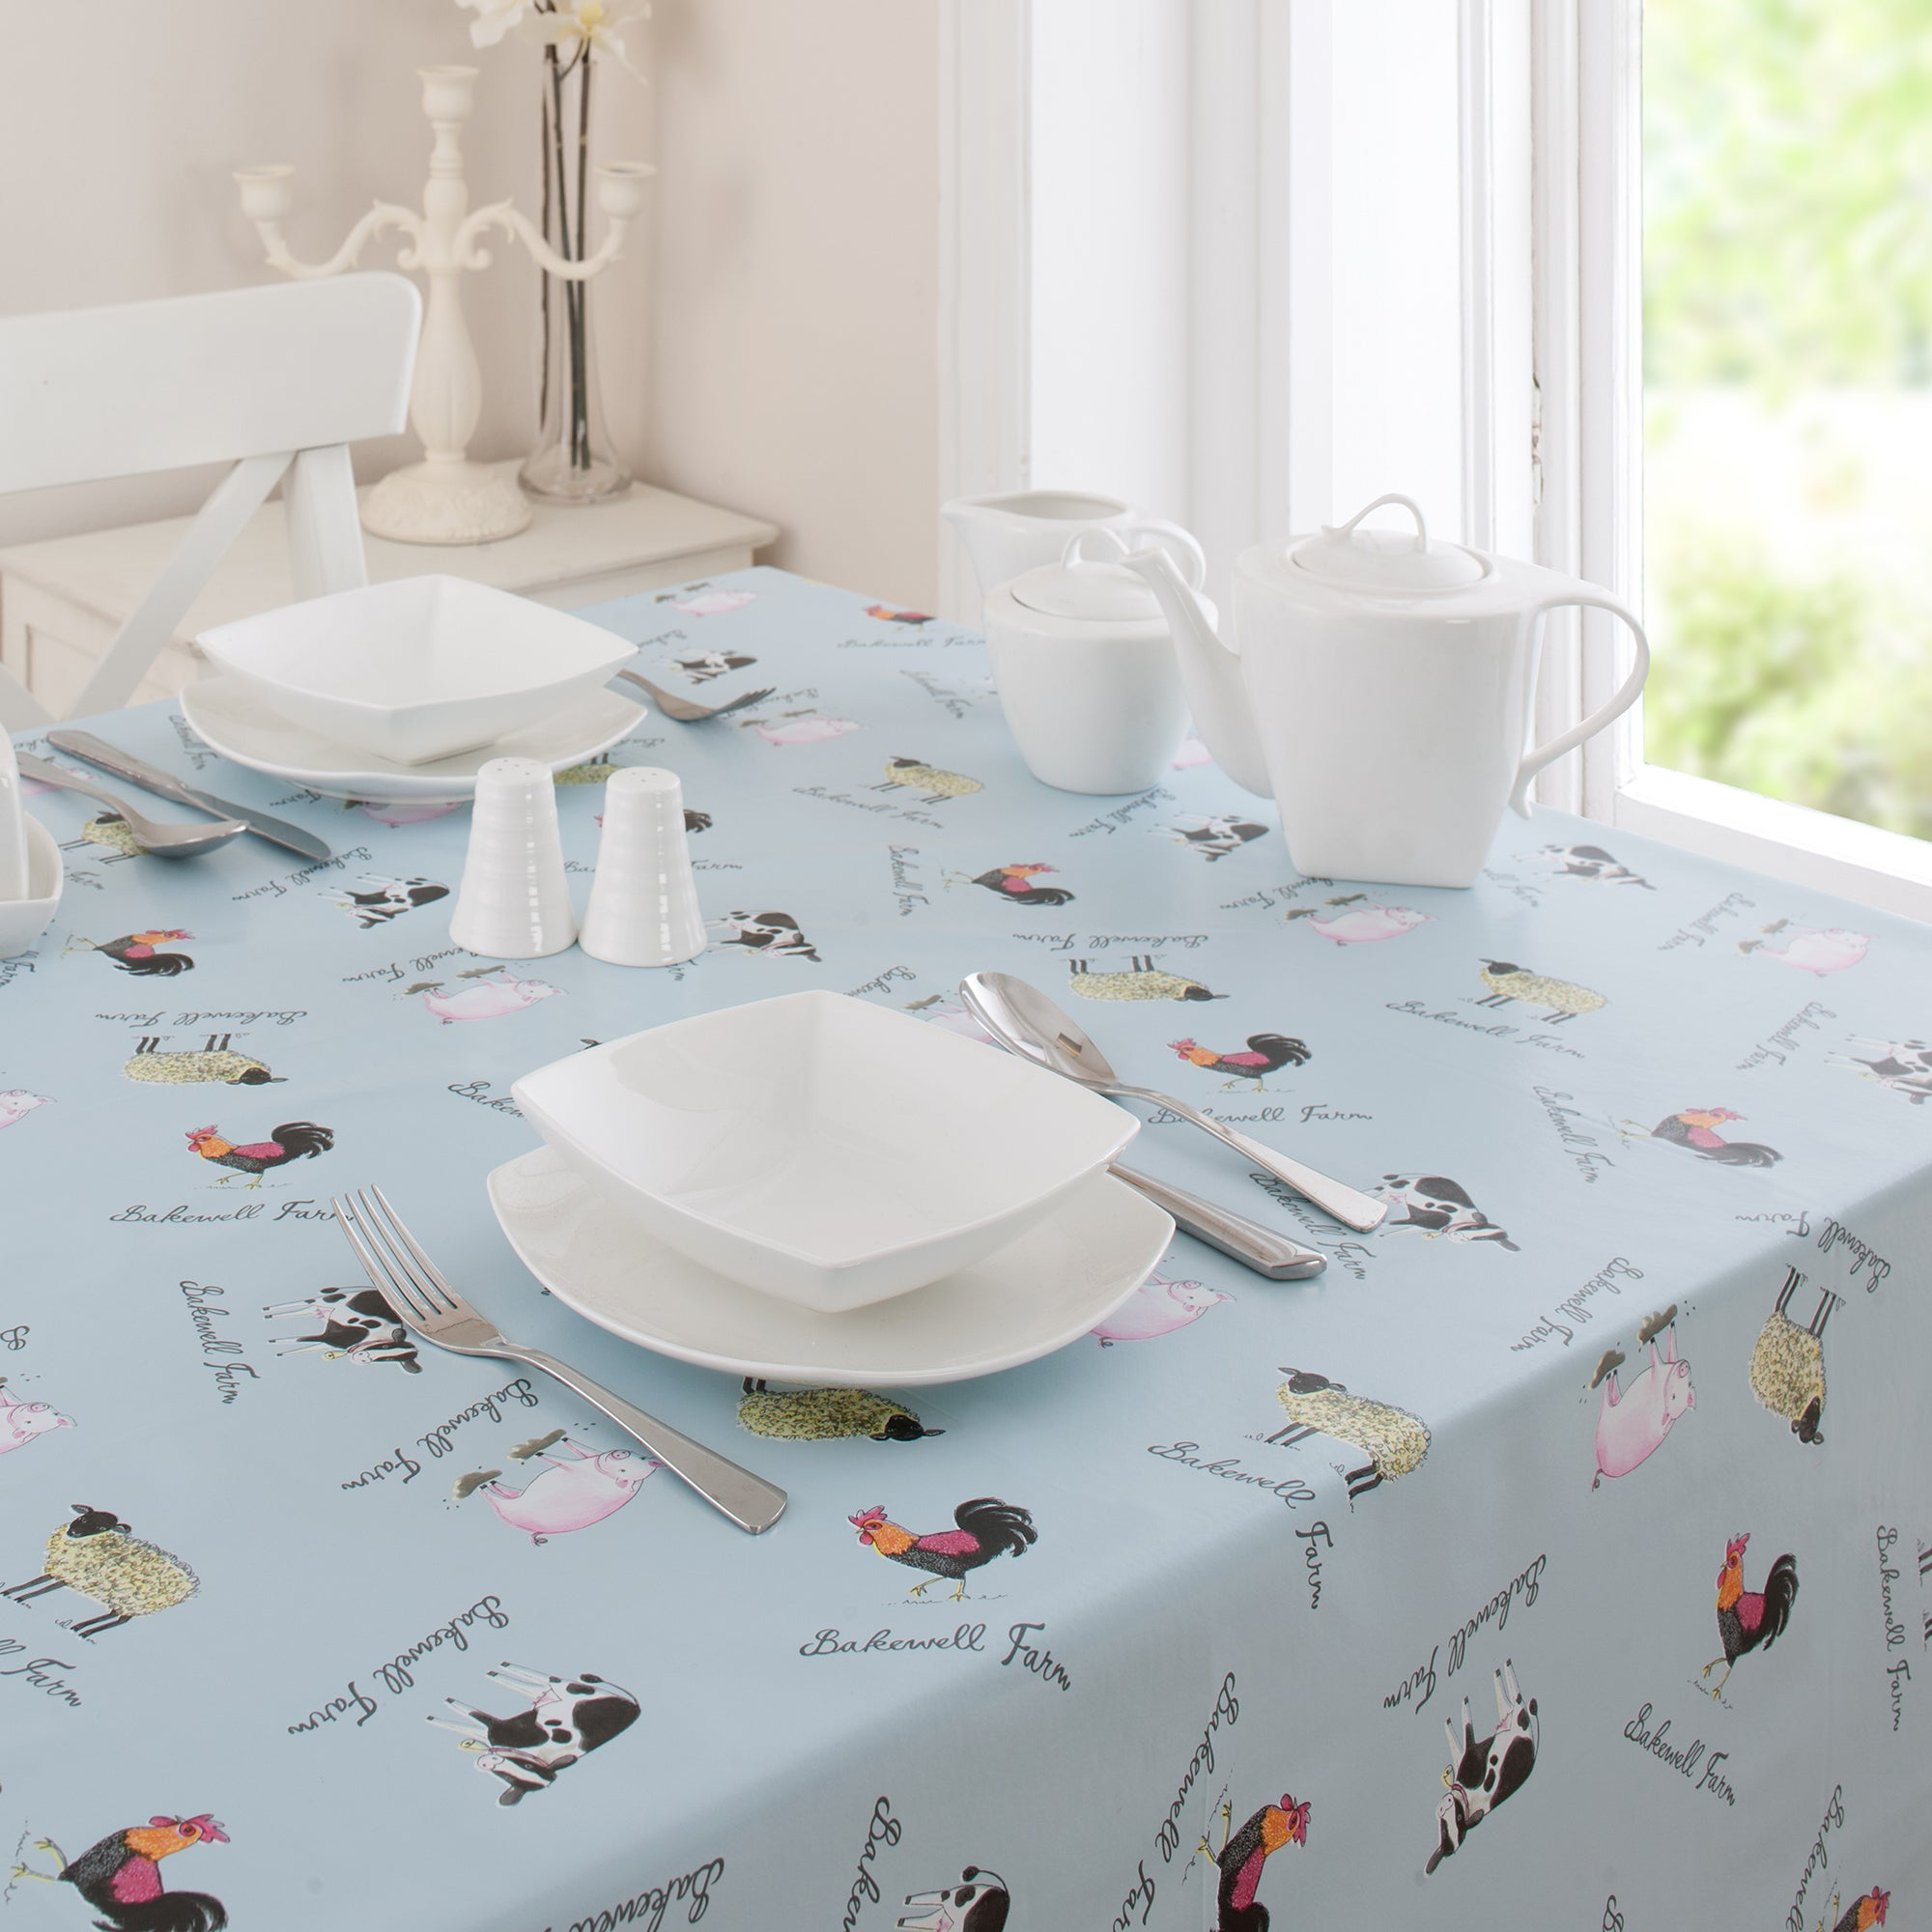 Bakewell Farm Collection Round PVC Tablecloth